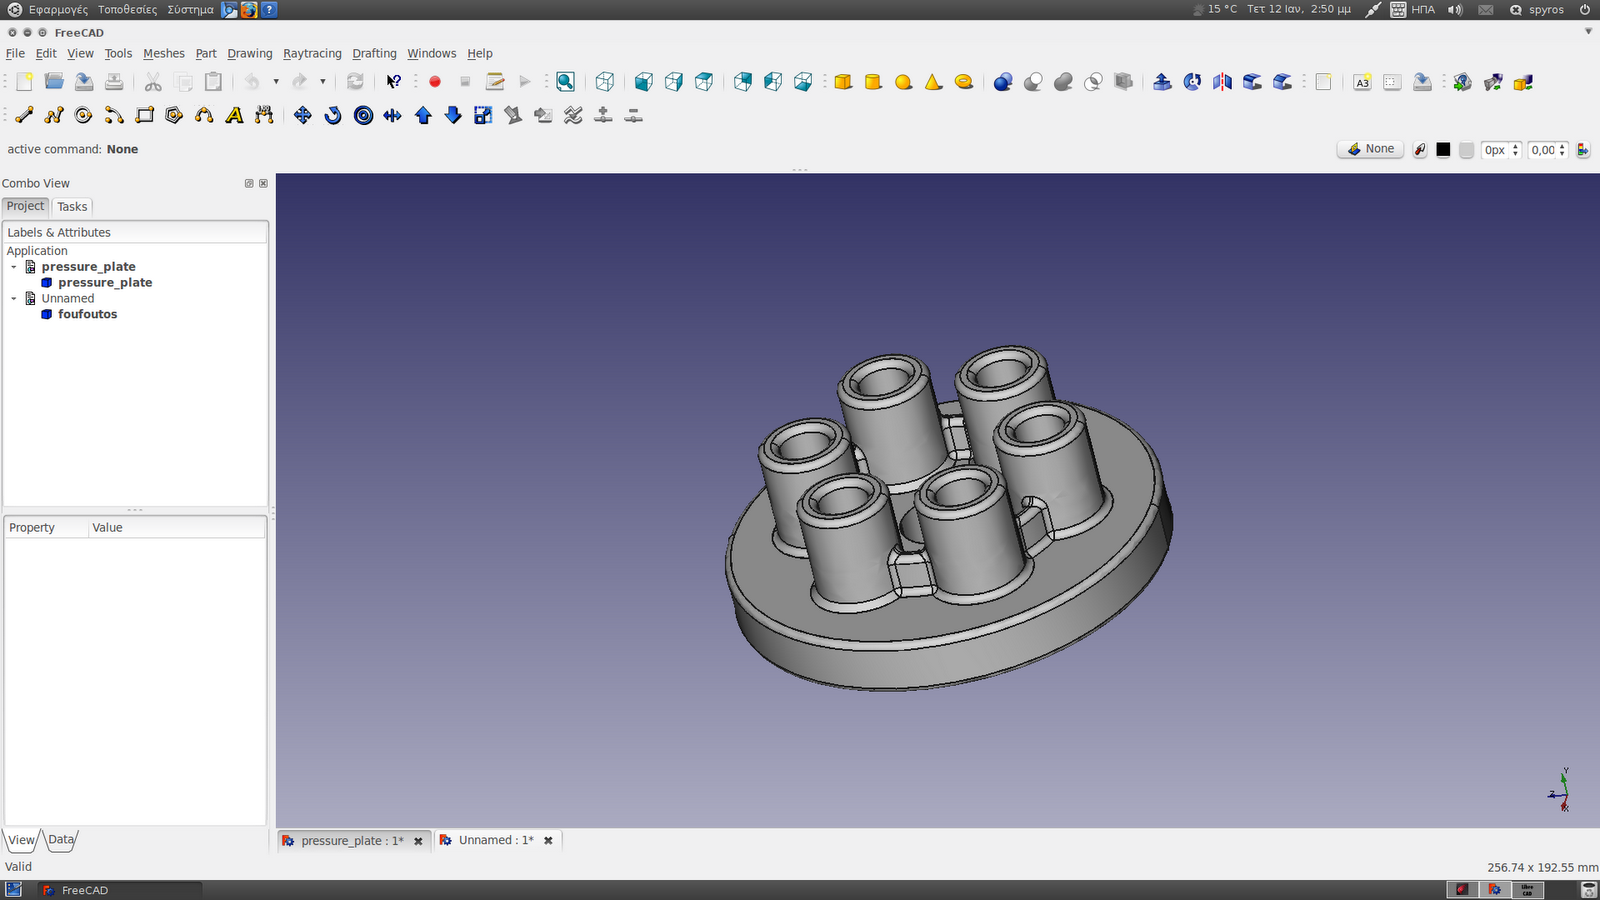 LibreCAD Review http://linuxaideddesign.blogspot.com/2011/01/screenshots-of-cad-apps.html